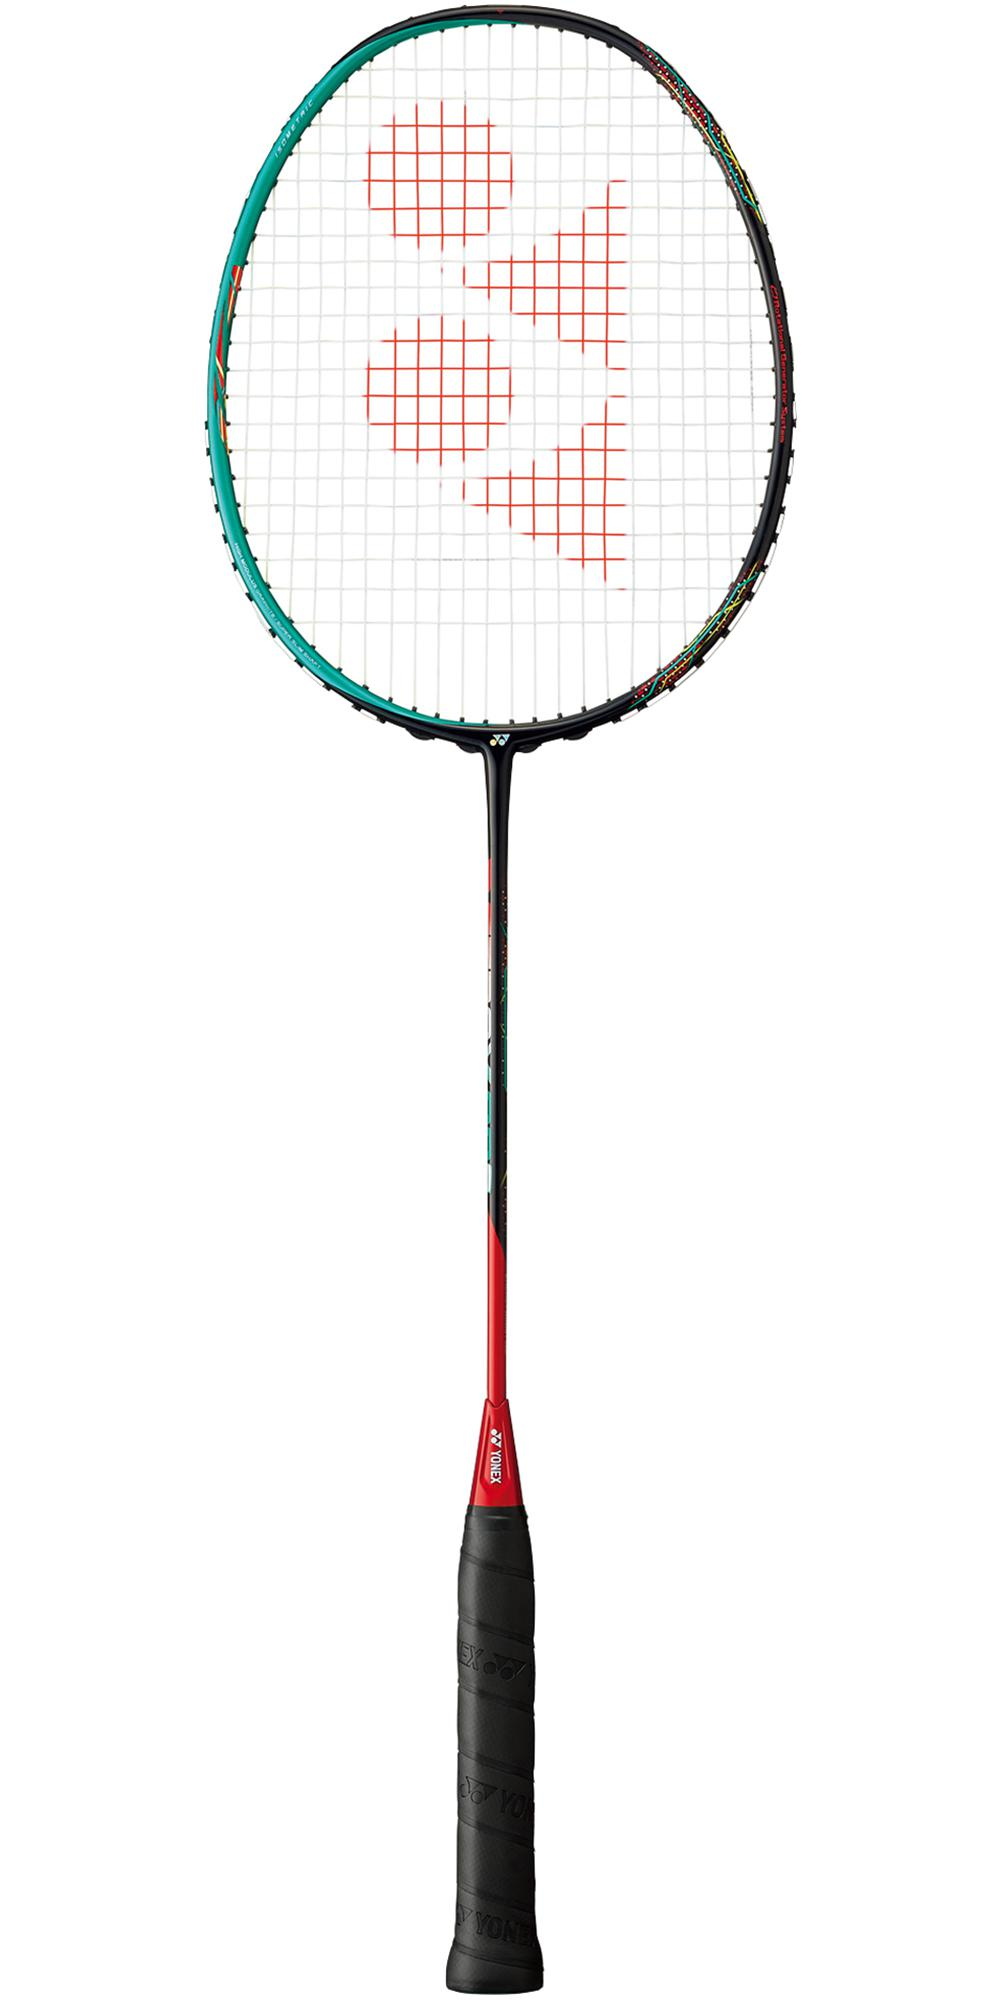 Yonex Astrox 88s Badminton Racket Parts Of A Tennis Racquet Detailed Description And Diagram